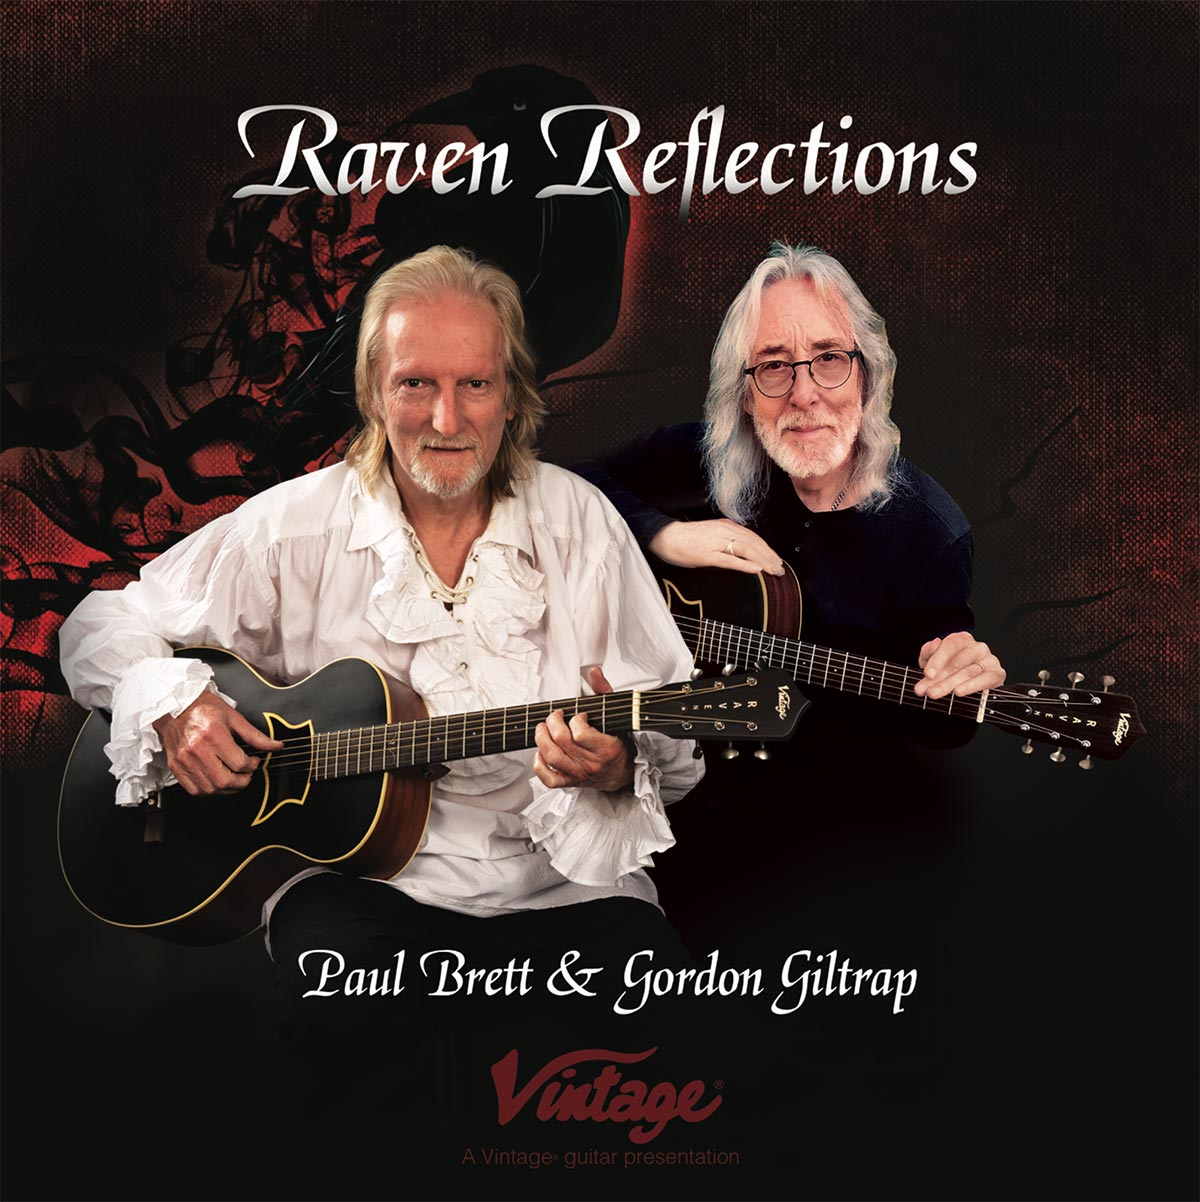 Two of the world's most creative acoustic guitar virtuosos, Gordon Giltrap MBE and Paul Brett record 'Raven Reflections' with Vintage guitars.